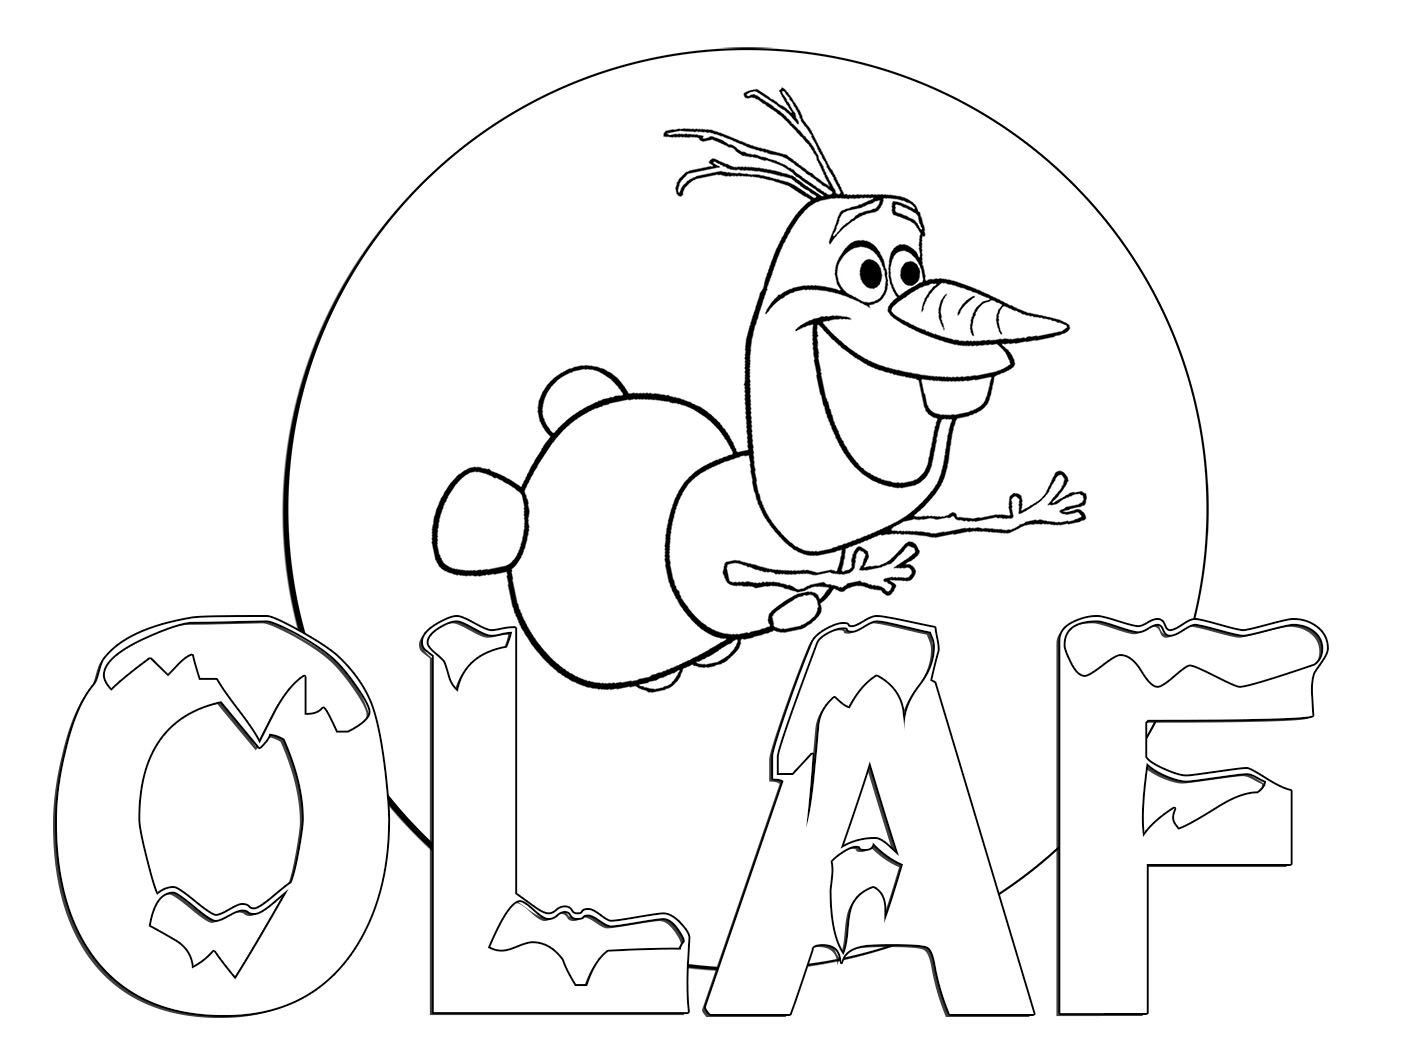 Die Eiskönigin Ausmalbilder Geburtstag : Images Coloring Pages Of Olaf Frozen Disney Manualidades